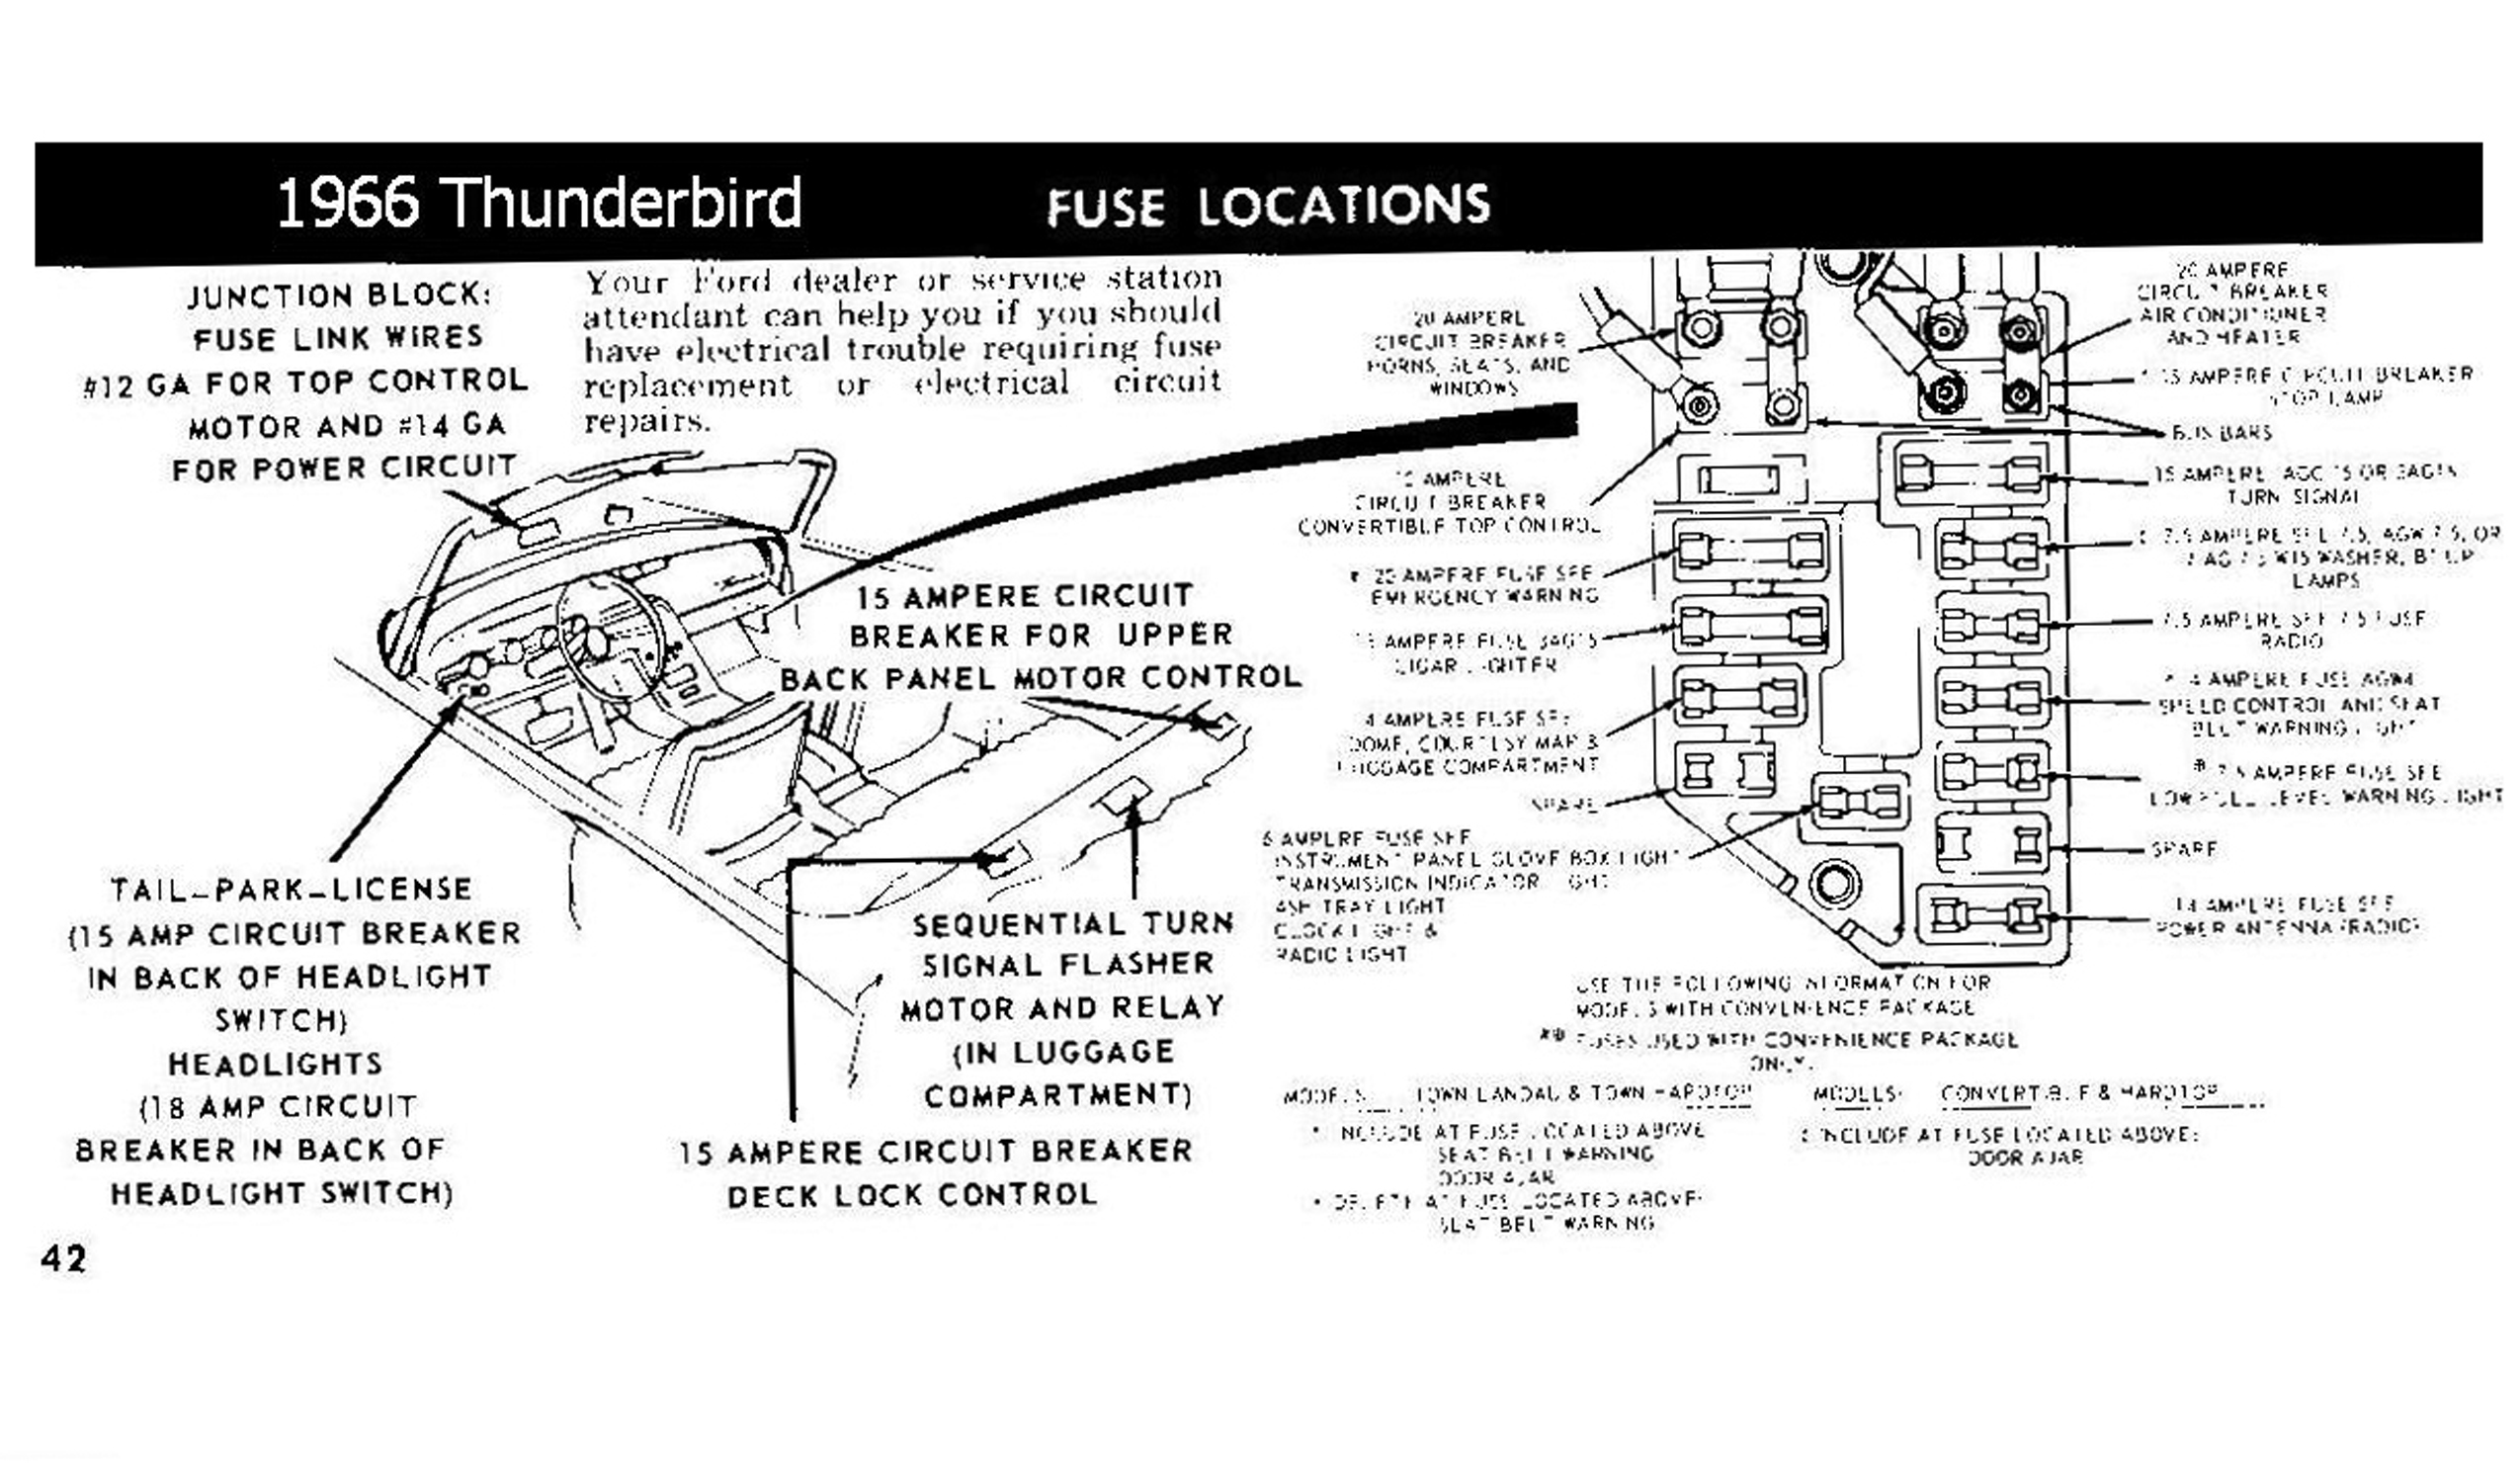 1955 thunderbird fuse box location trusted wiring diagram u2022 rh soulmatestyle co